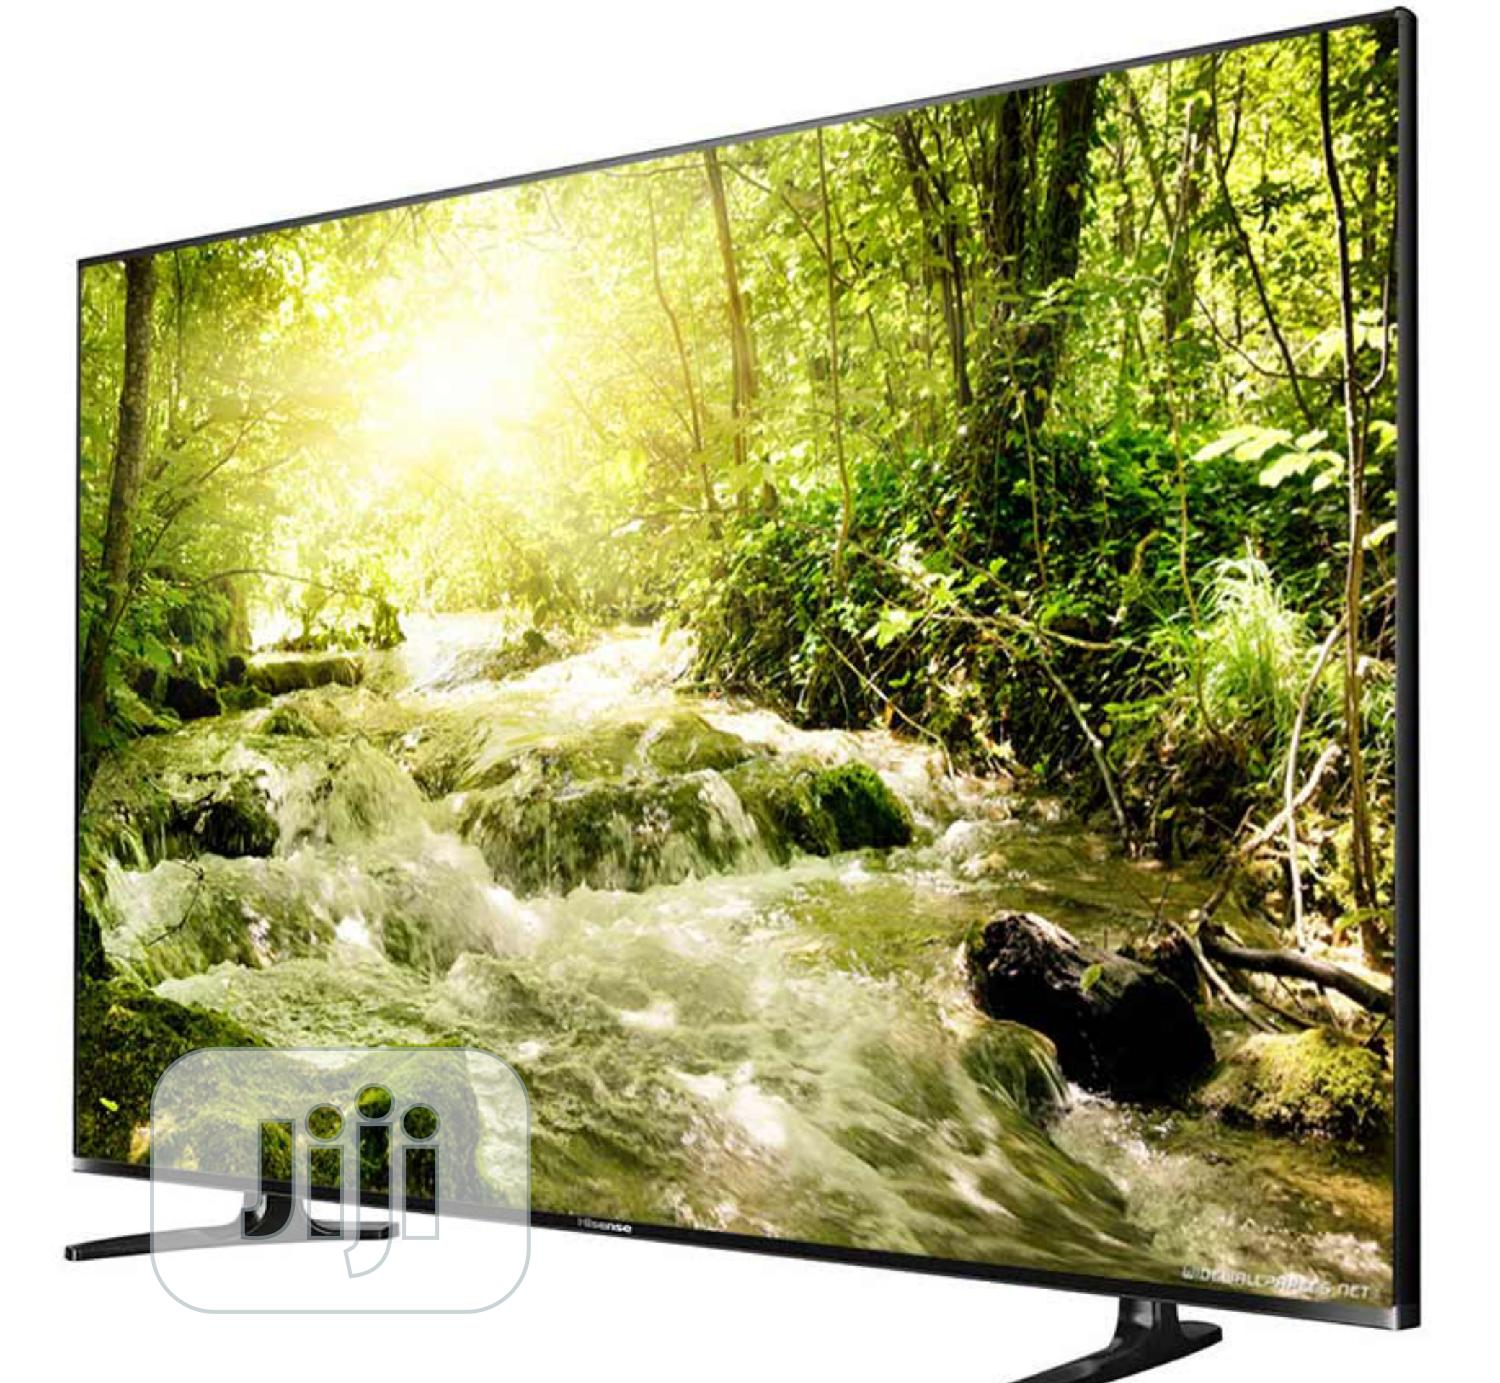 """New Hisense Series7 Led Fullhd 40""""Inch TV Wizard Picture"""